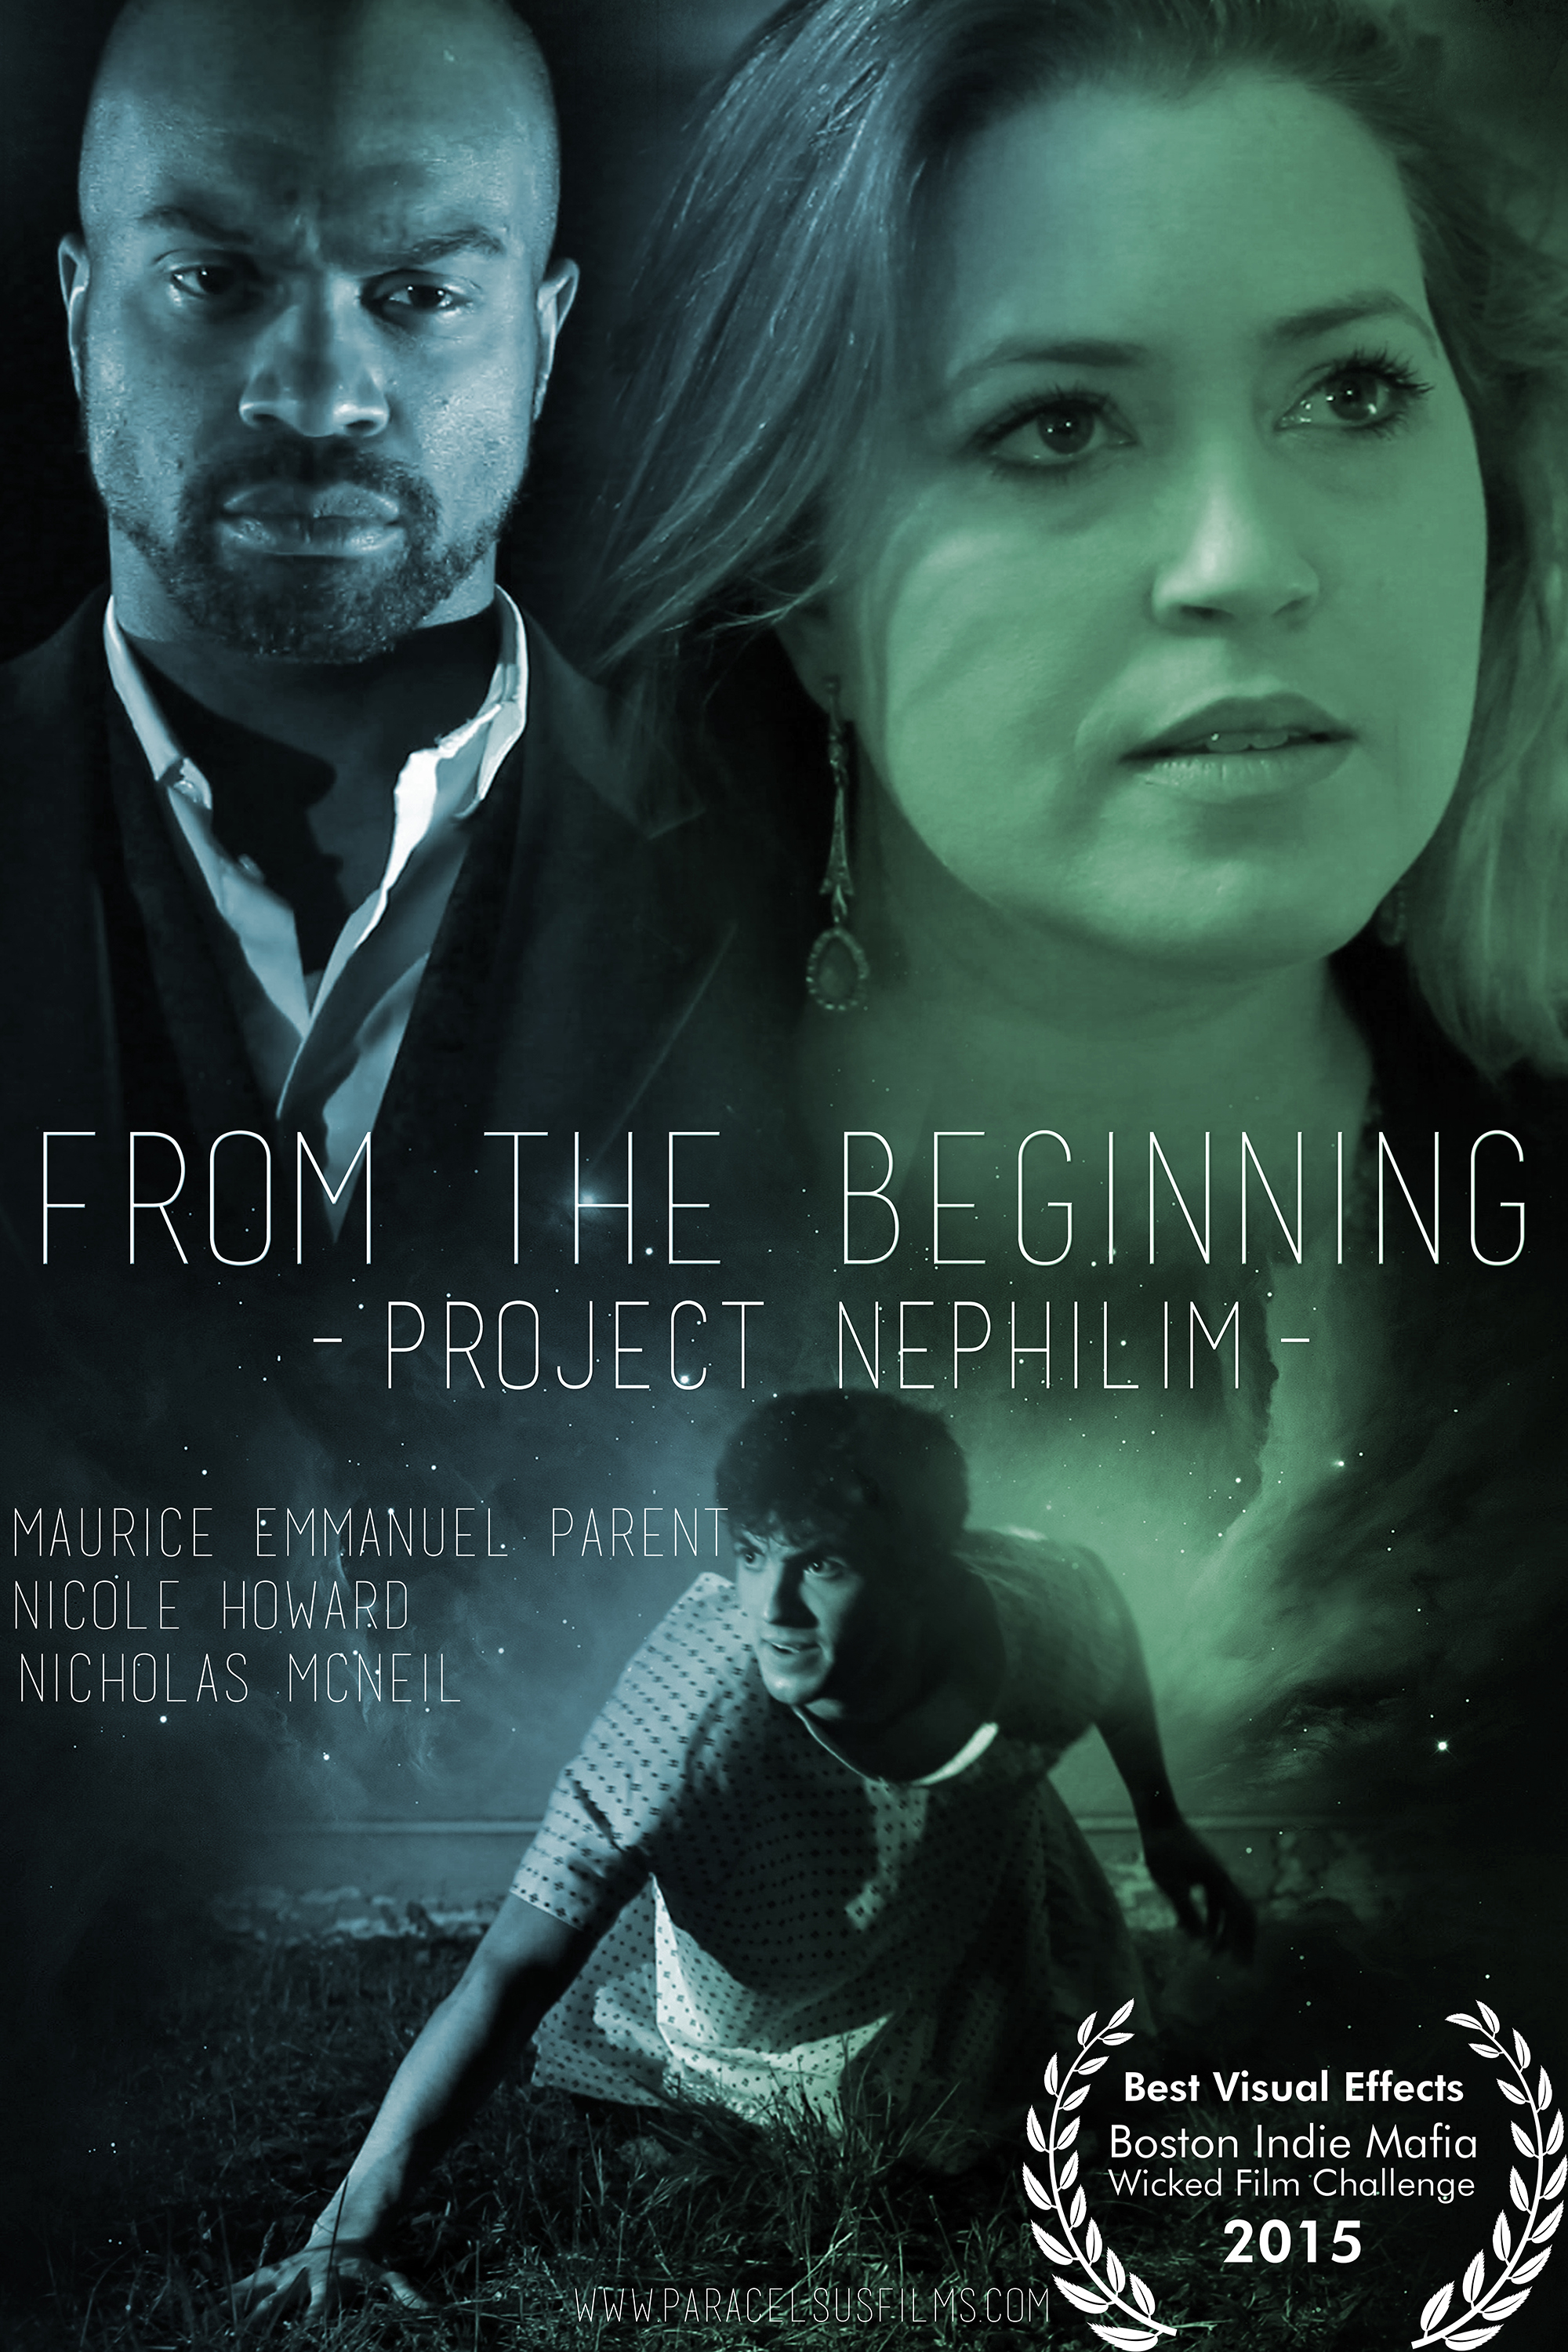 Paracelsus Films Presents Project Nephilim, From The Beginning